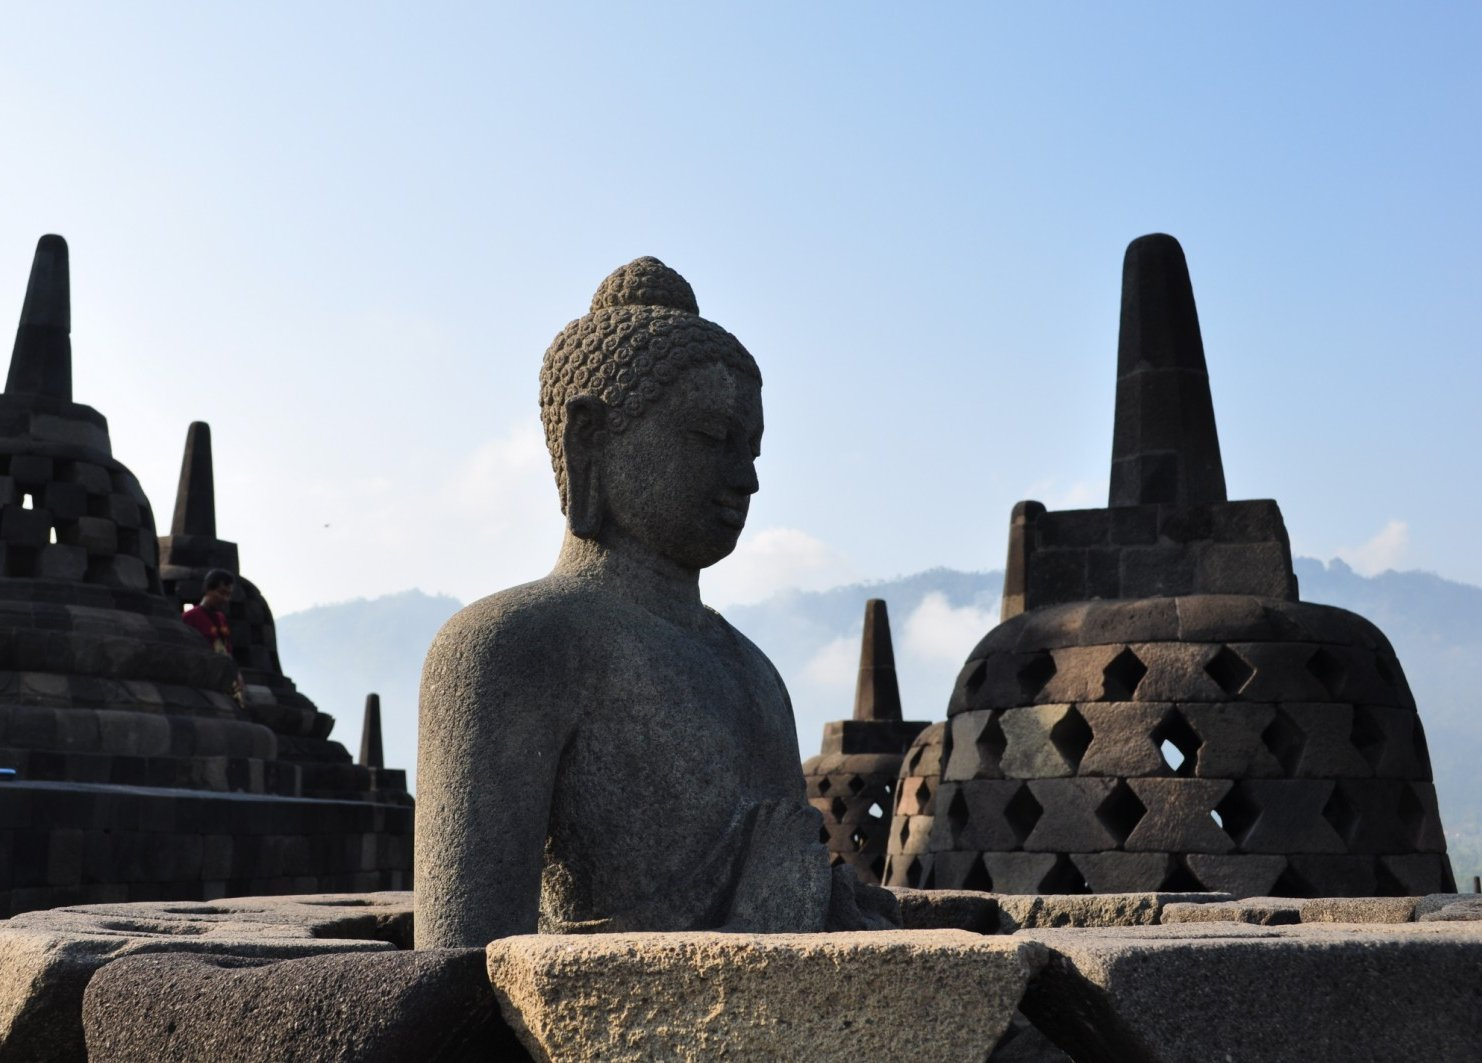 When you finally reach the top of Borobudur Temple, you feel the weight of the Temple lift off to reveal the open skies above.  It&#039;s a great sensation that&#039;s hard to capture by camera.